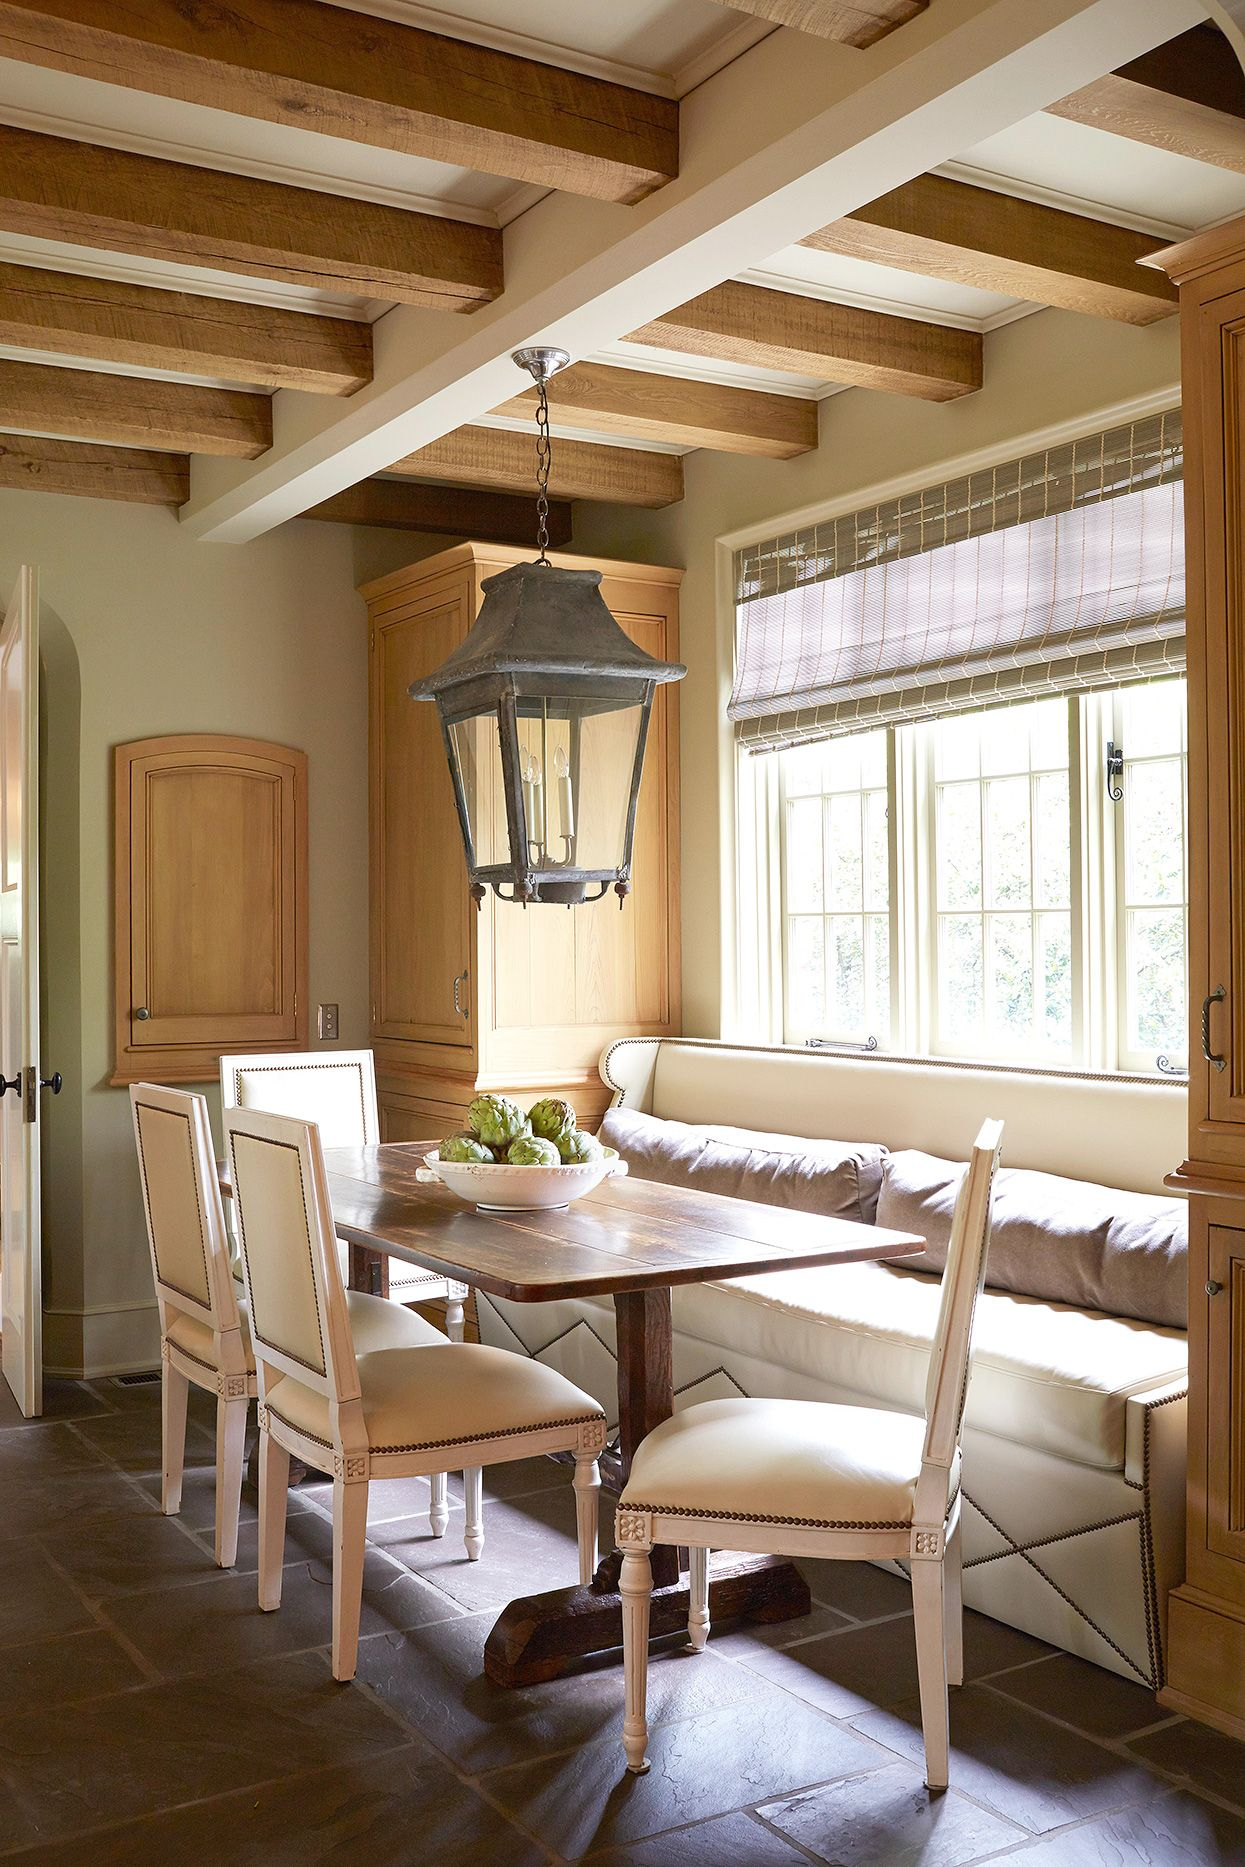 Our Best Breakfast Room Banquette Ideas Banquette Seating In Kitchen Dining Room Banquette Banquette Dining